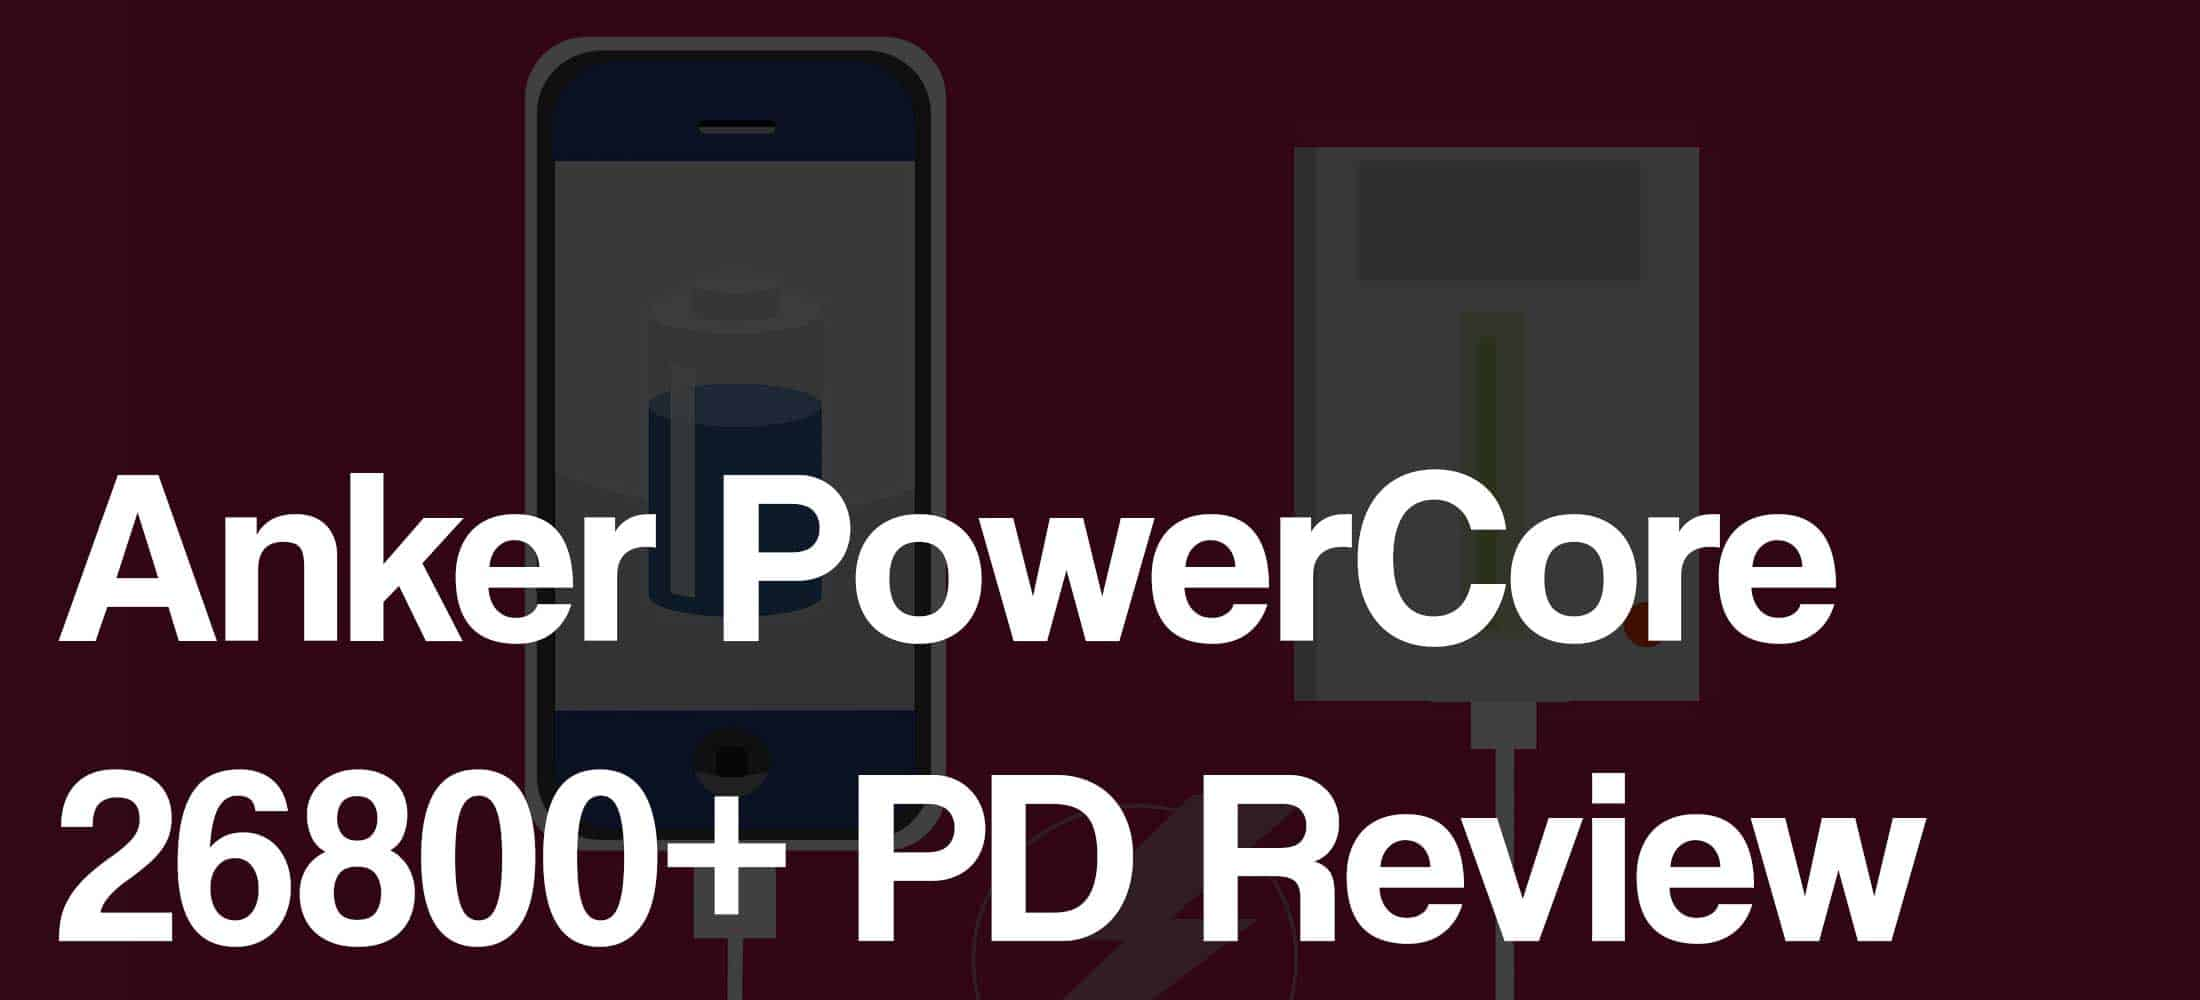 Anker powercore 26800 pd review